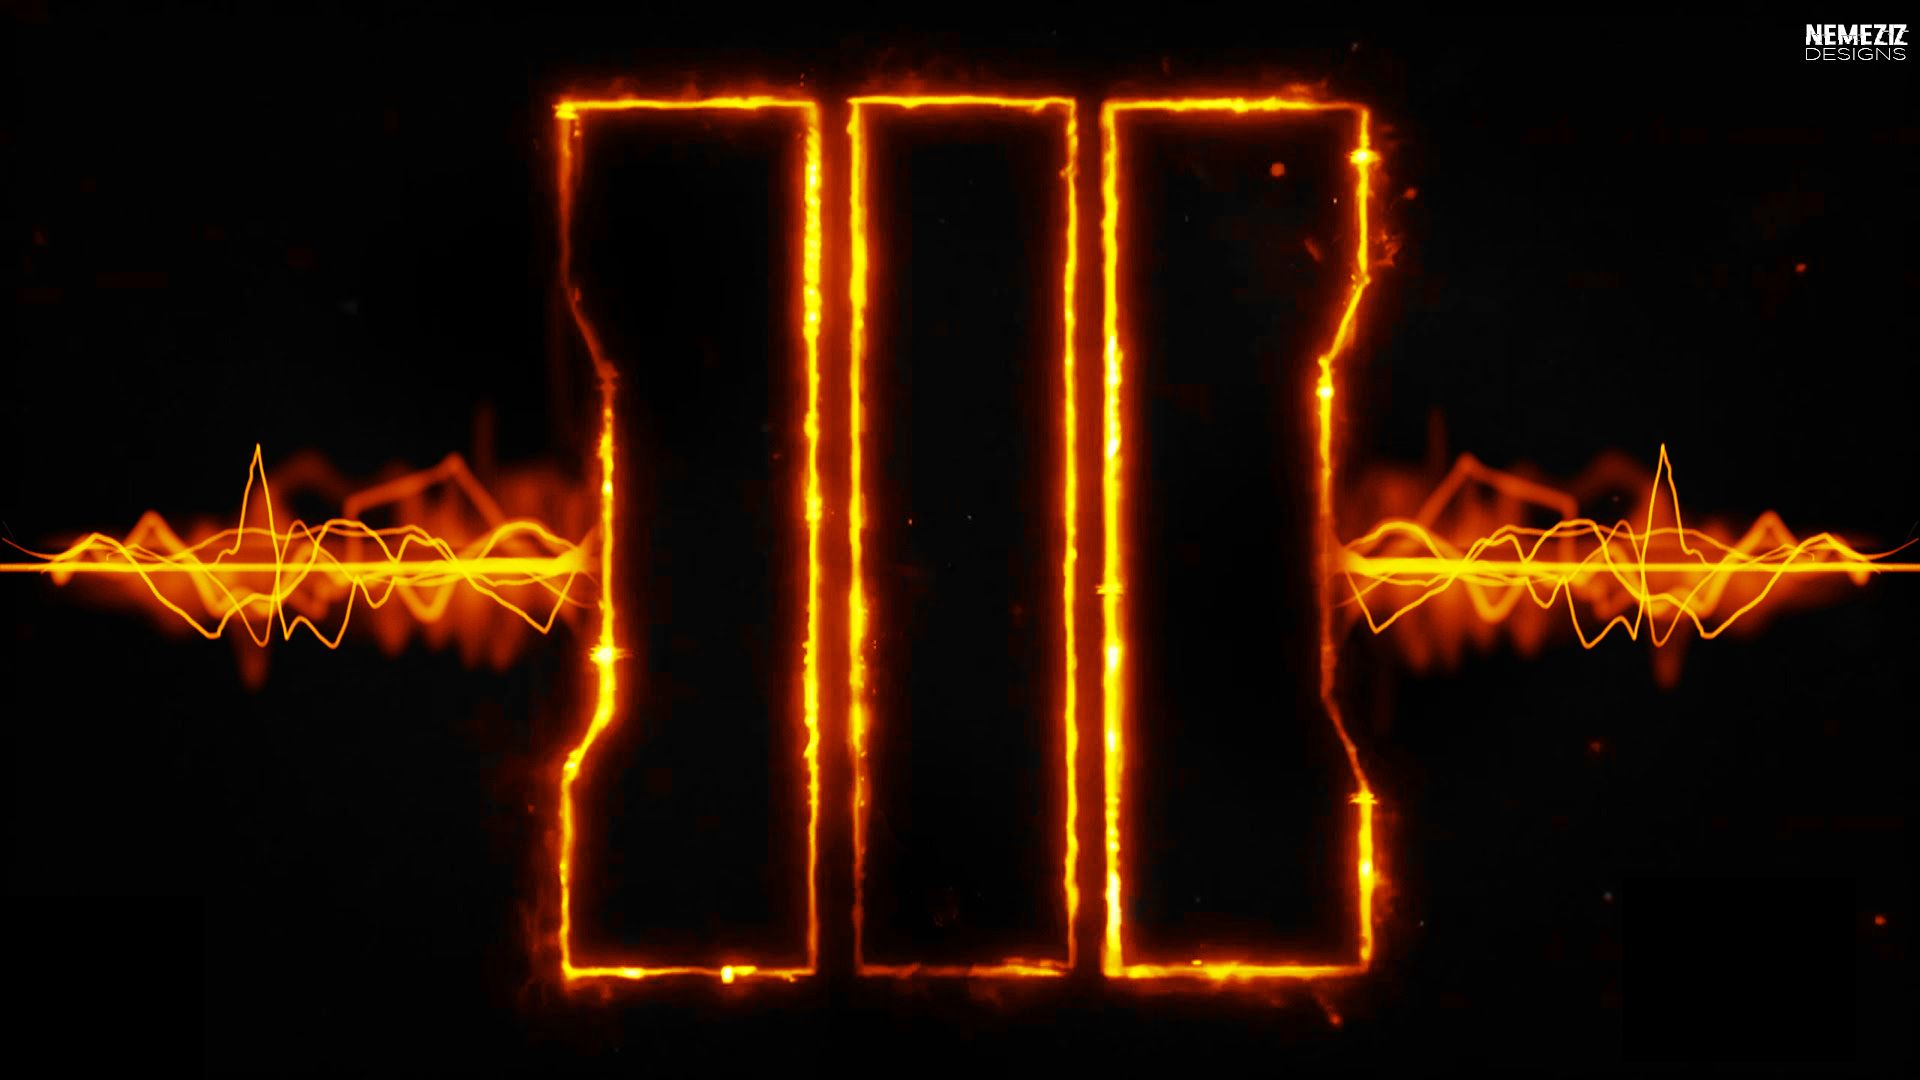 black ops 3 wallpaper 1080p buscar con google